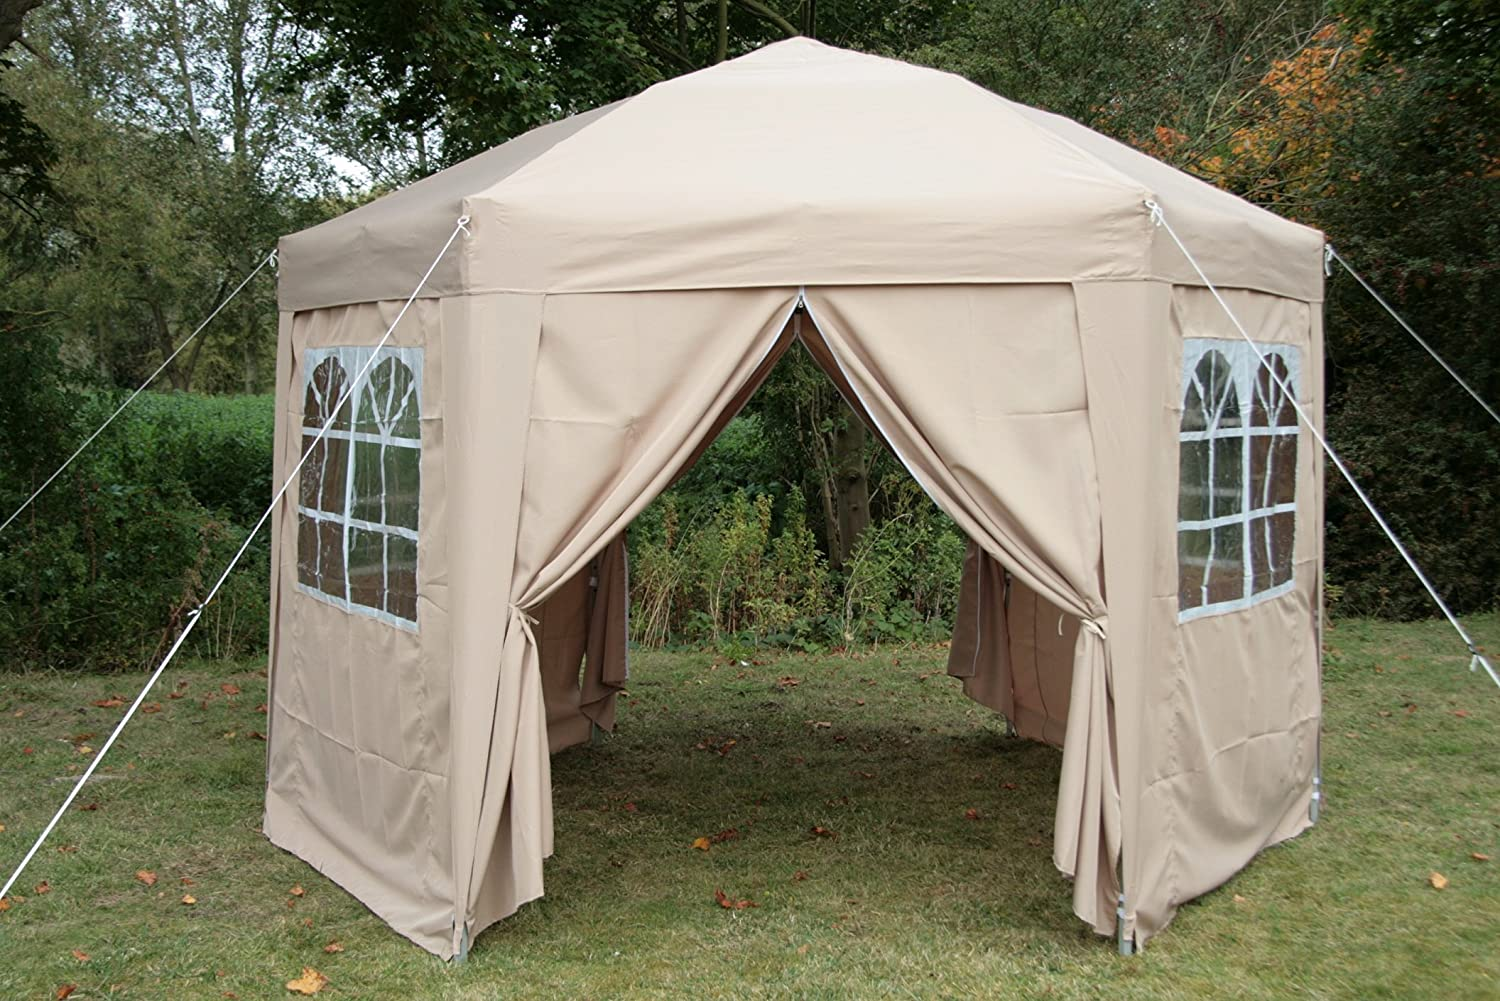 Airwave 35mtr Pop Up Gazebo HEXAGONAL Biege Fully Waterproof With Six Sides And CarryBag Amazoncouk Garden Outdoors